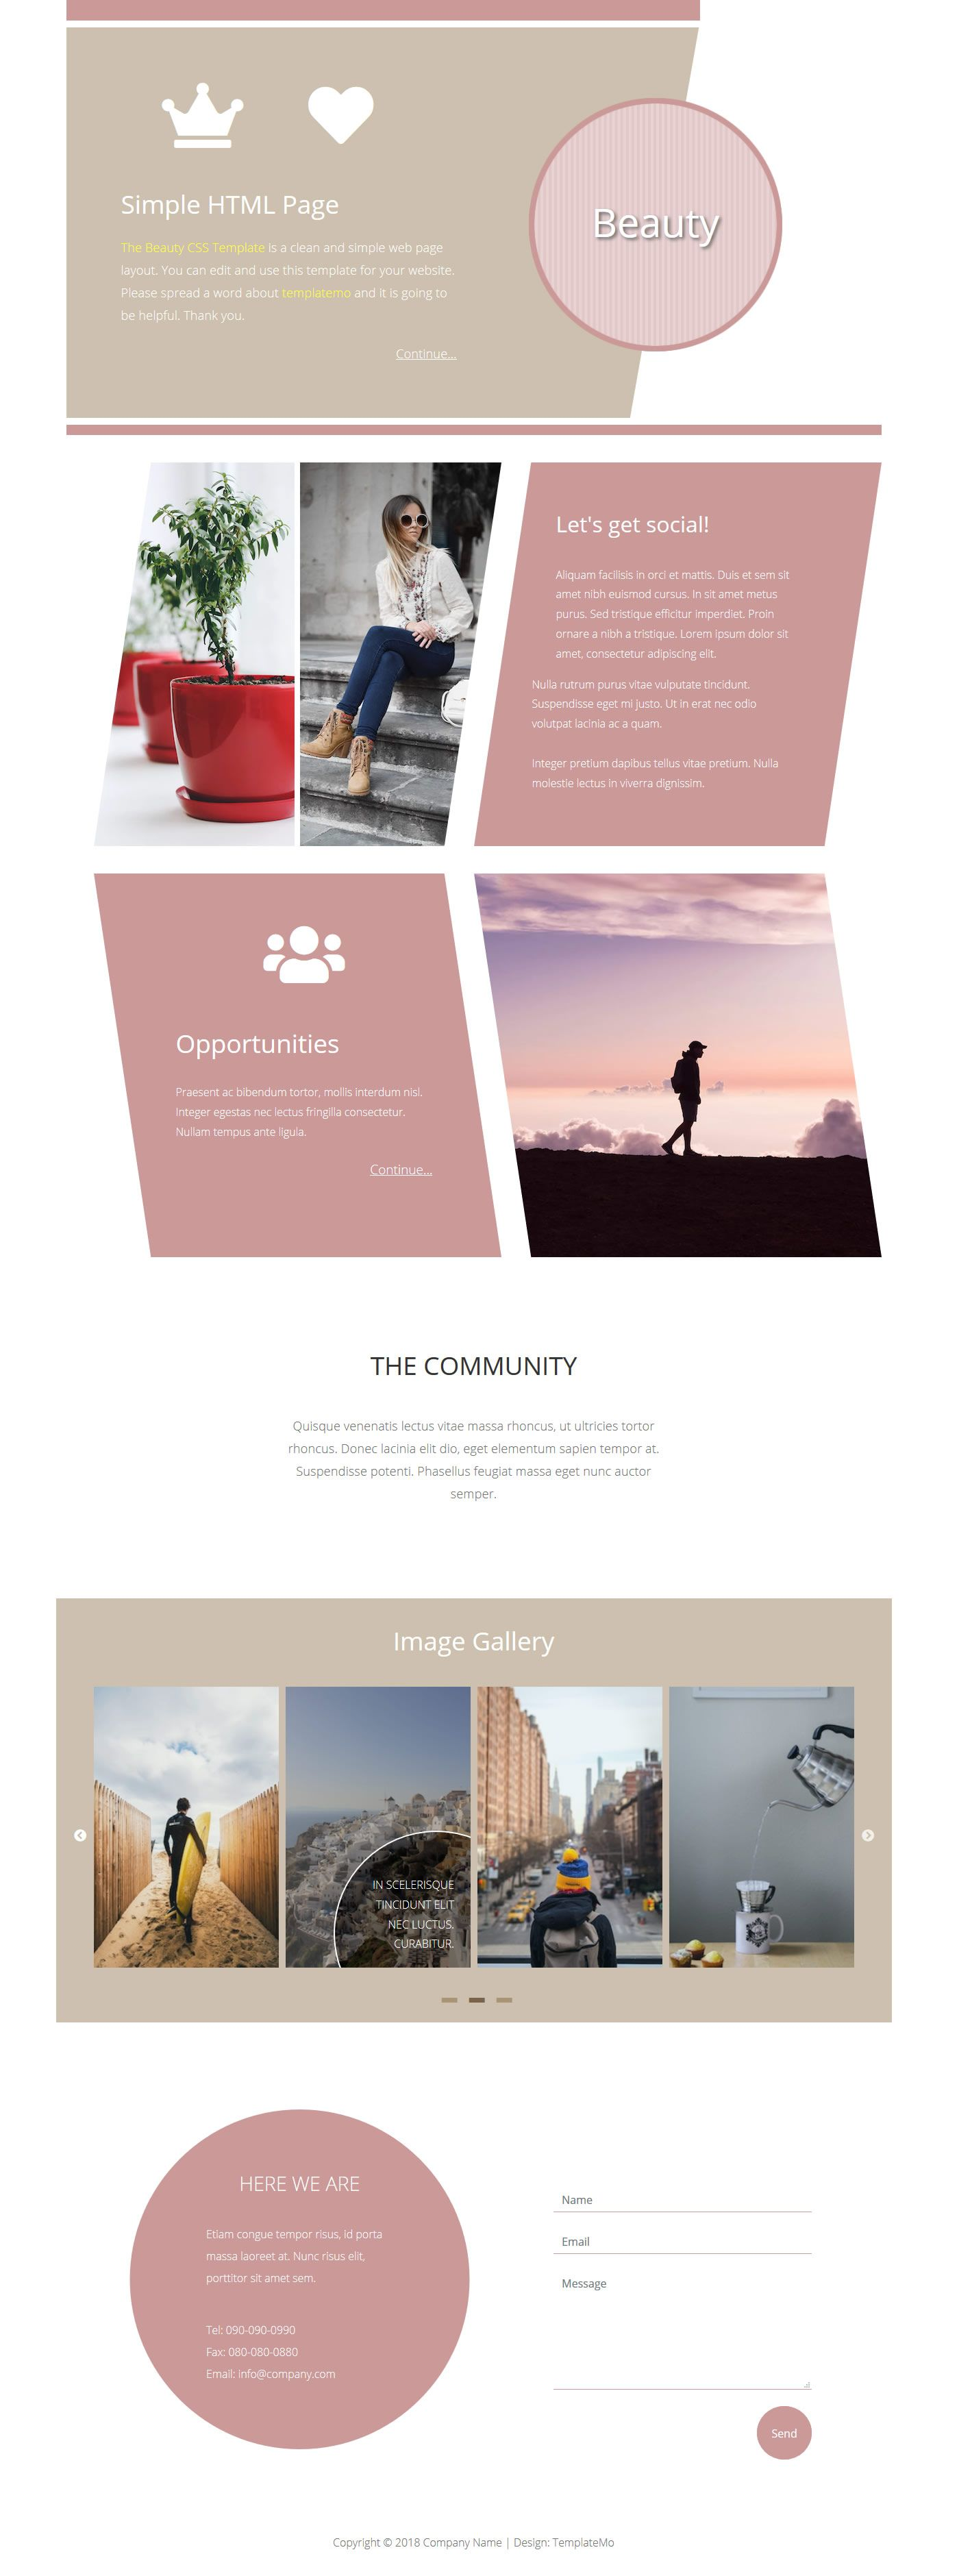 Beauty Is A Stylish One Page Template With Circles And Leaning Shapes This Is Minimal And Mobile Rea Css Templates Beautiful Web Design Html And Css Templates